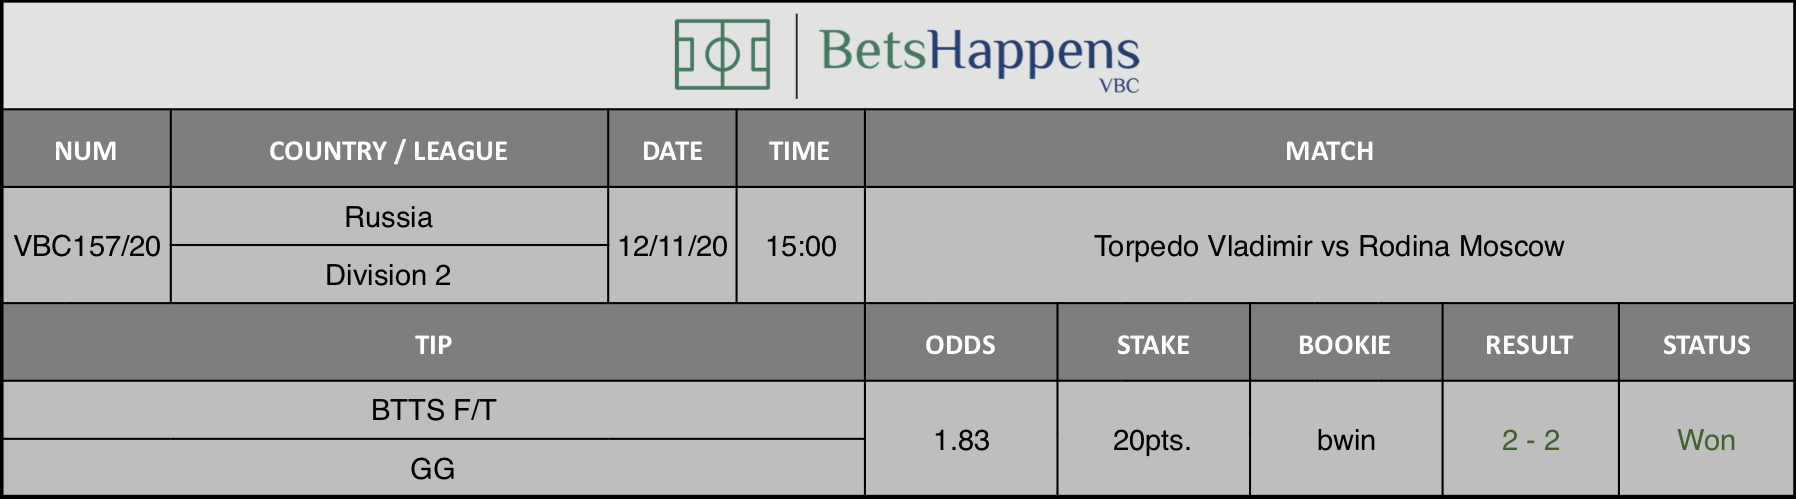 Results of our tip for the Torpedo Vladimir vs Rodina Moscow match where BTTS F/T  GG is recommended.